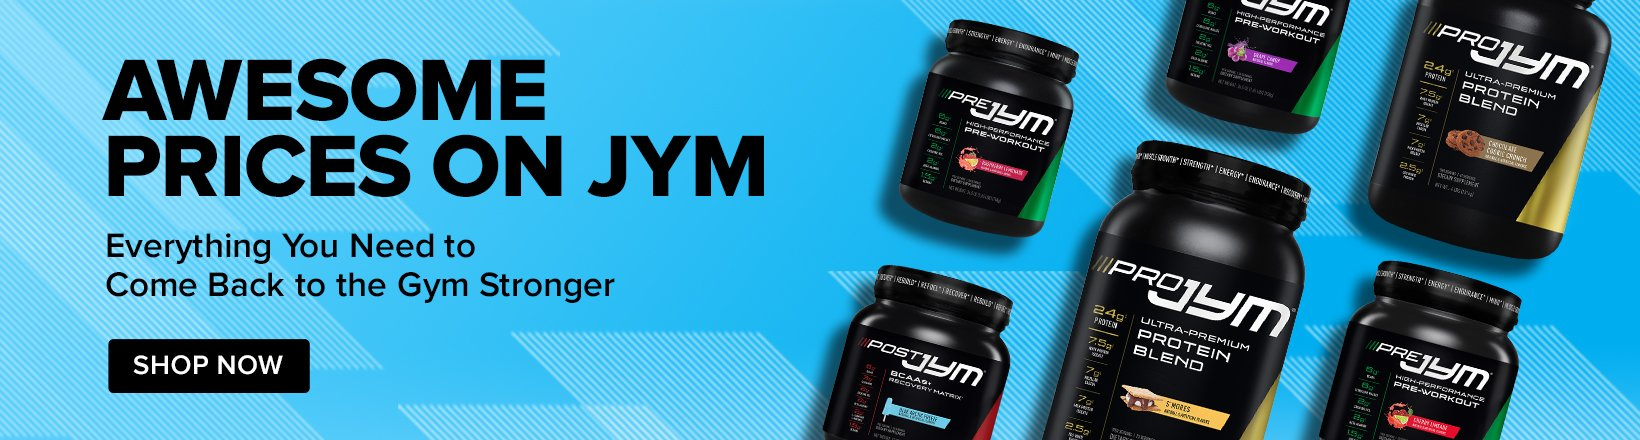 Awesome Prices on JYM